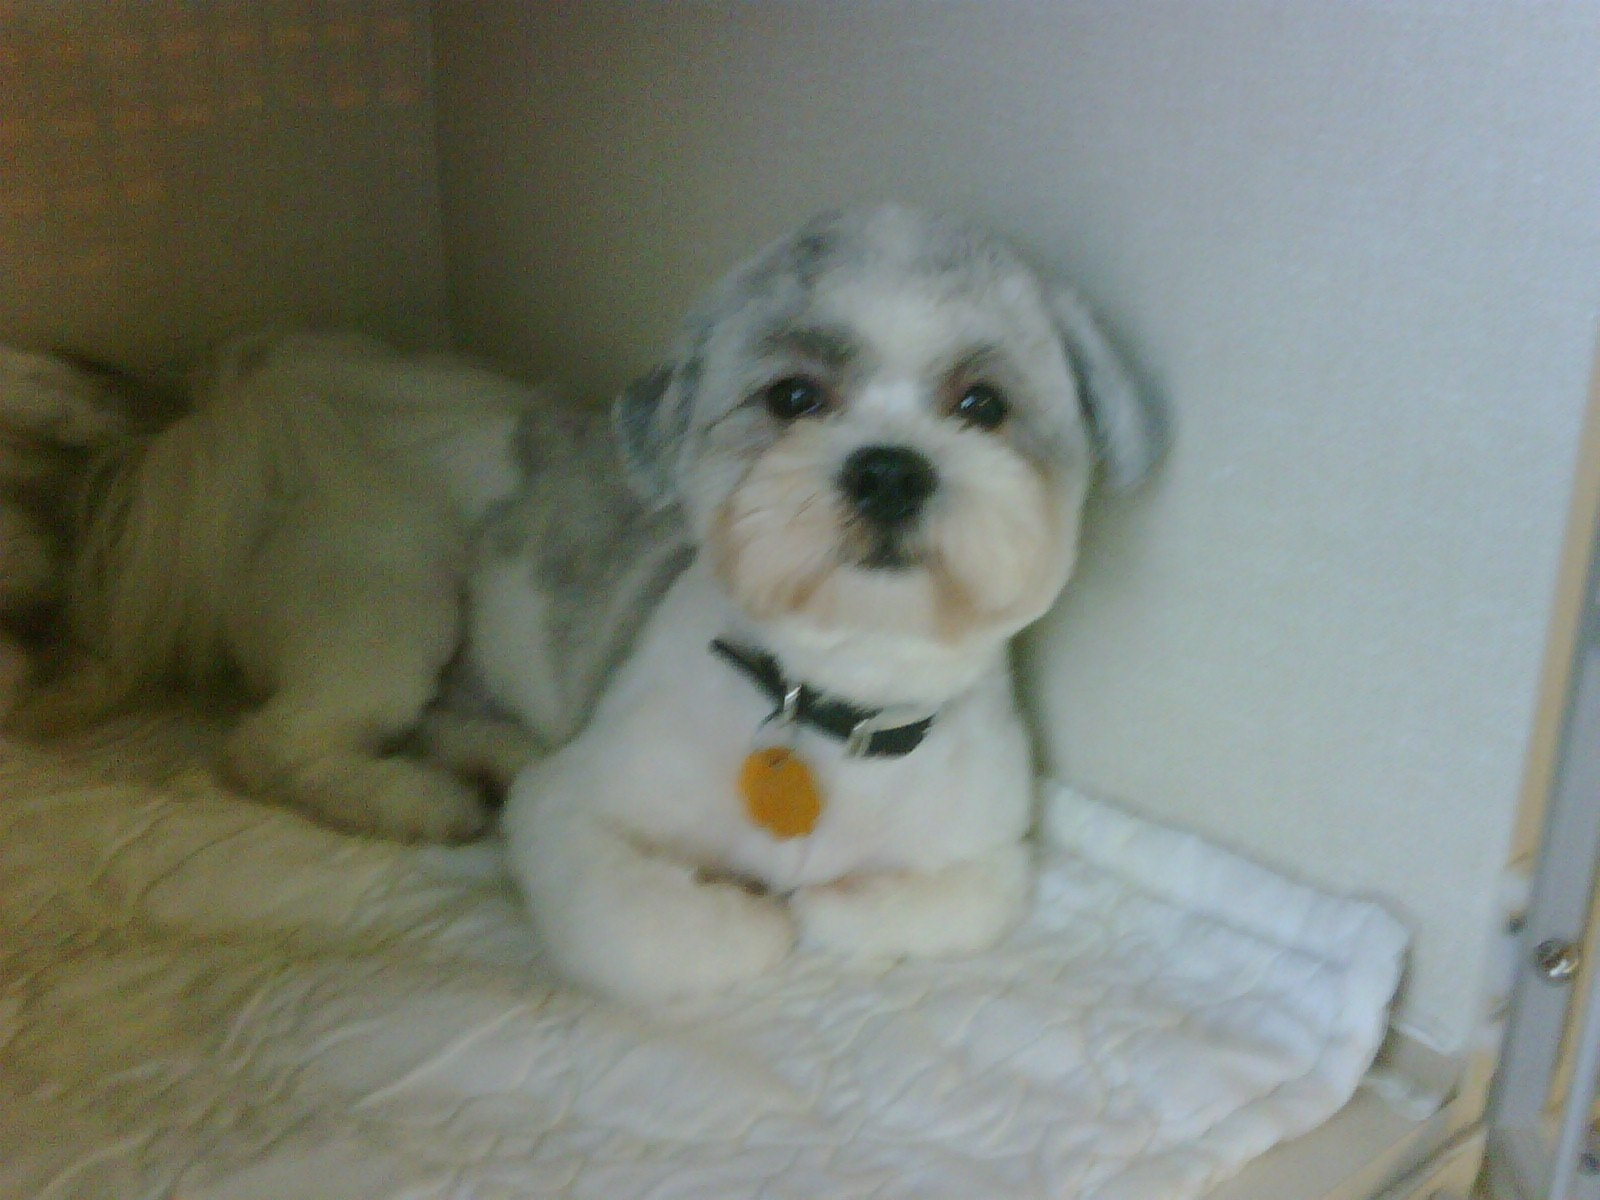 Soft Touch Dog Grooming in Orangeville: After